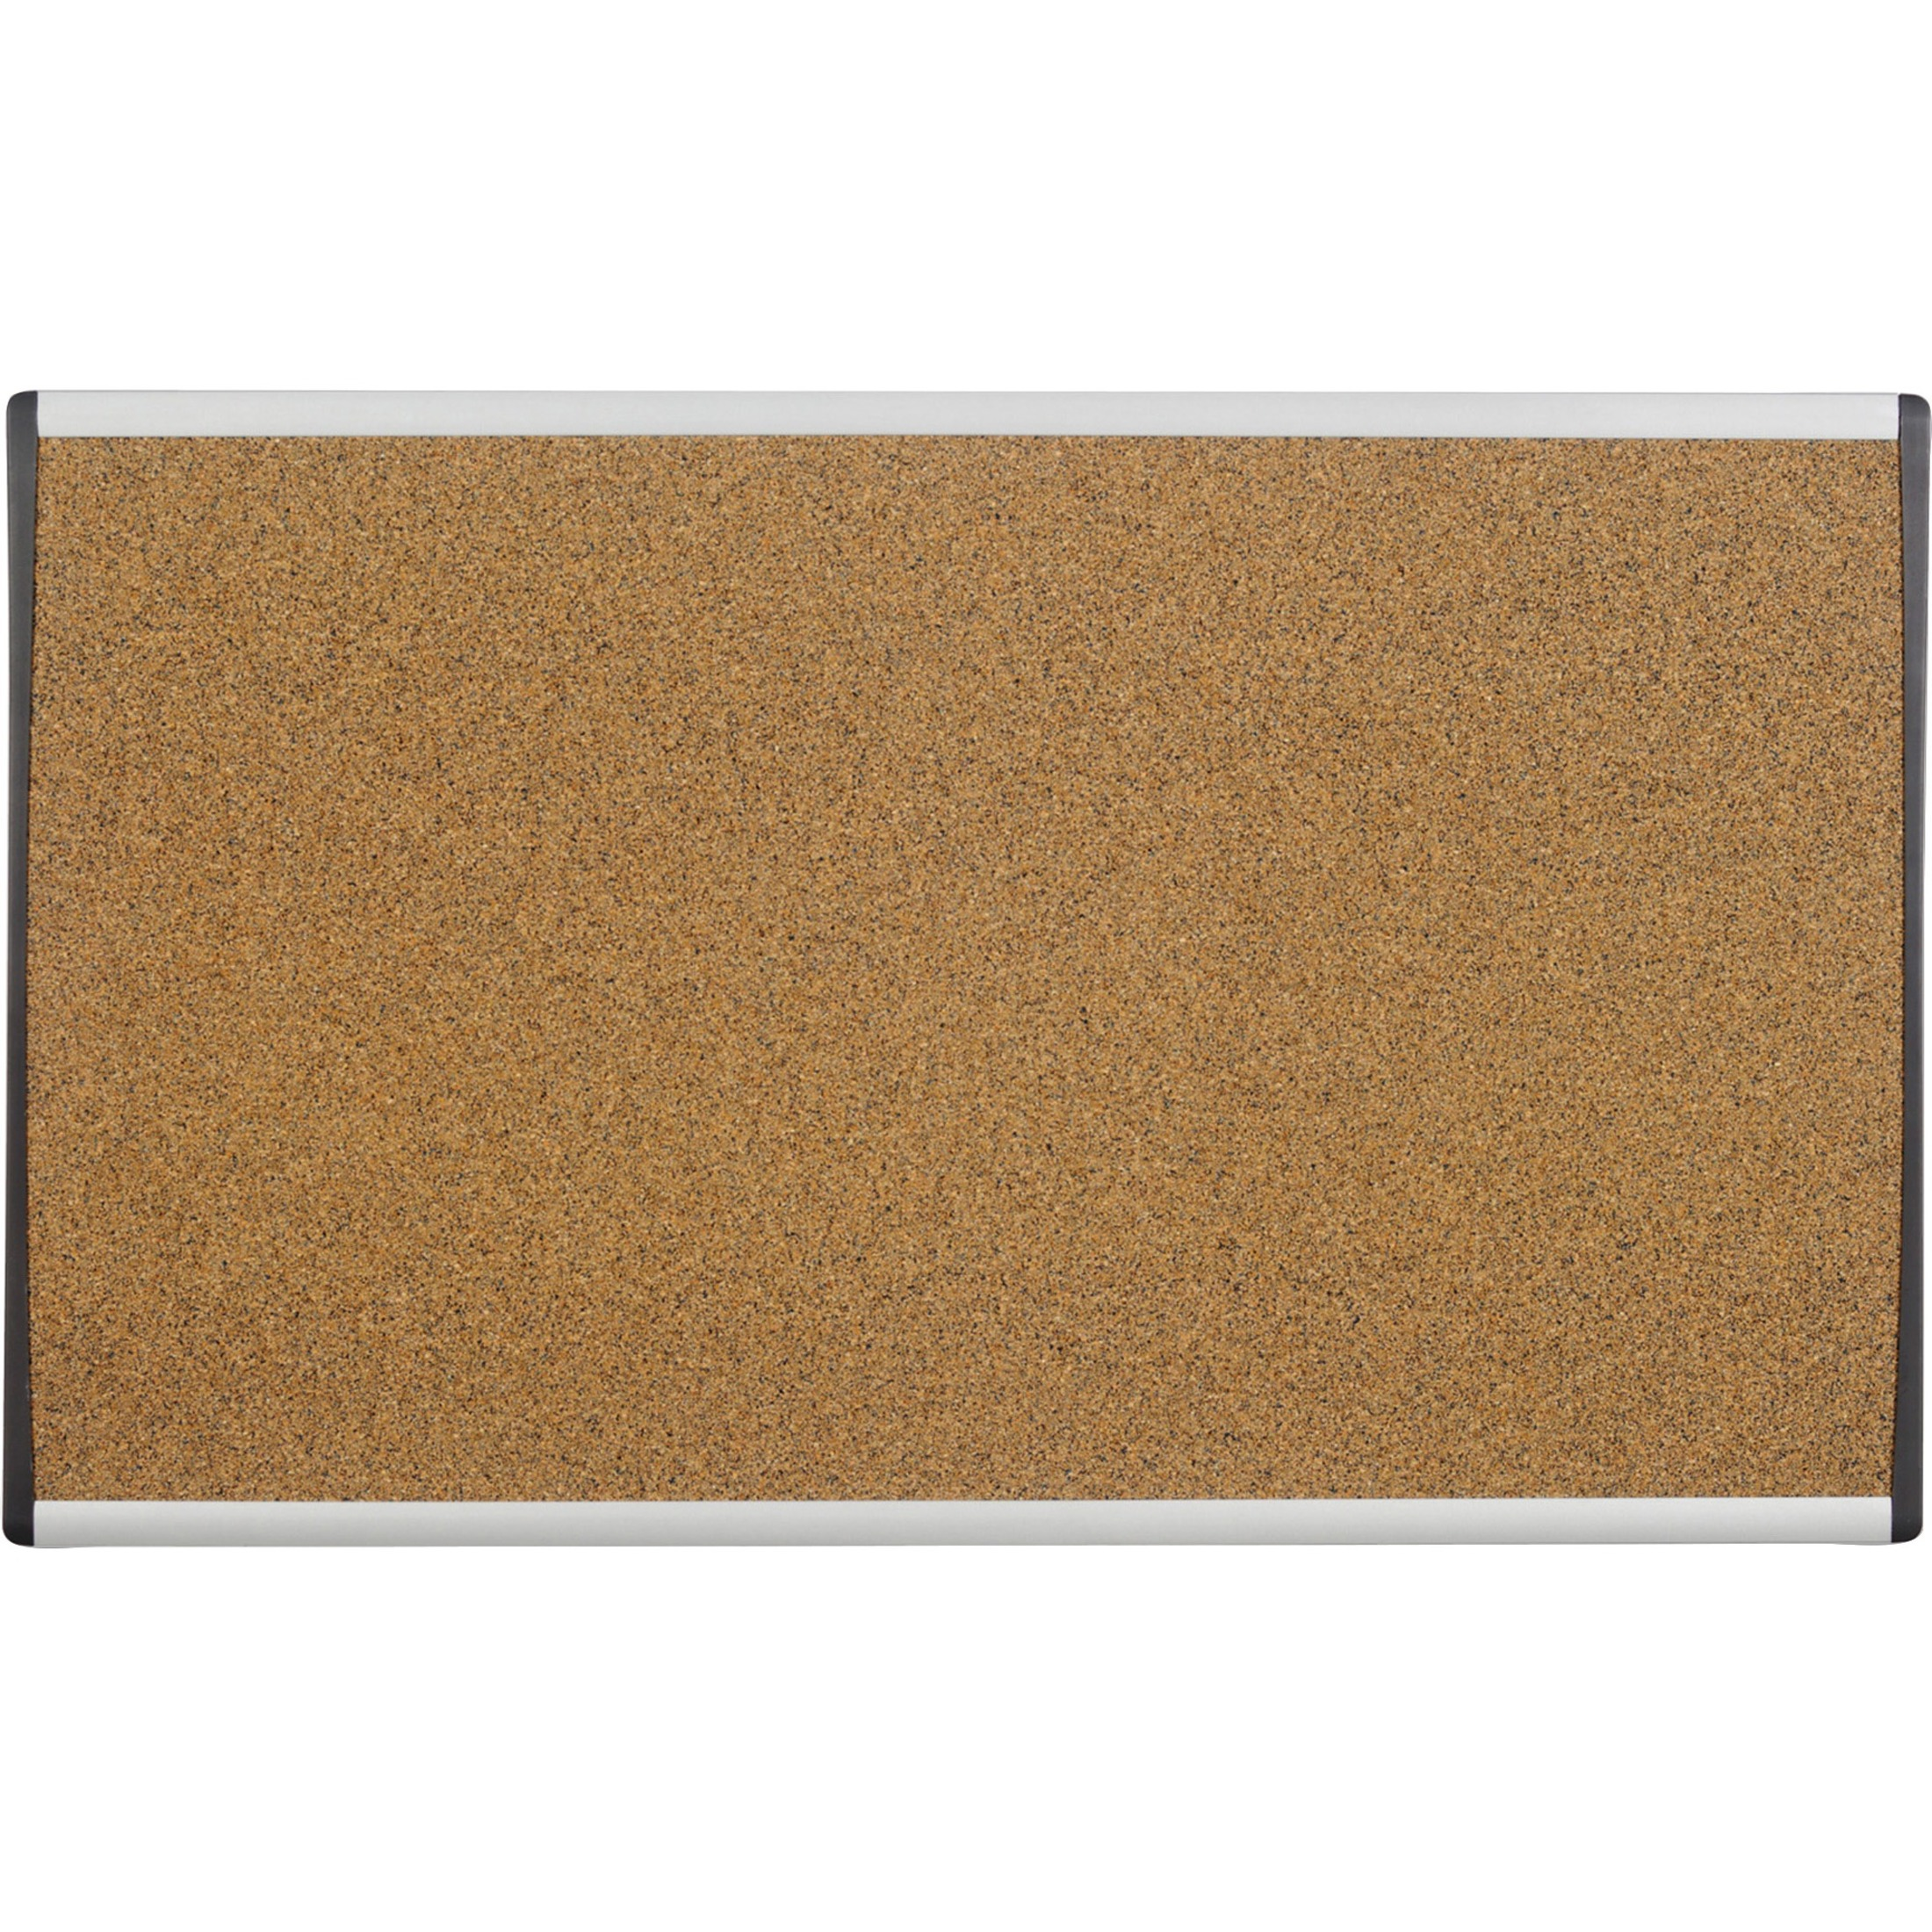 ARC Frame Cork Cubicle Board, 18 x 30, Tan, Aluminum Frame